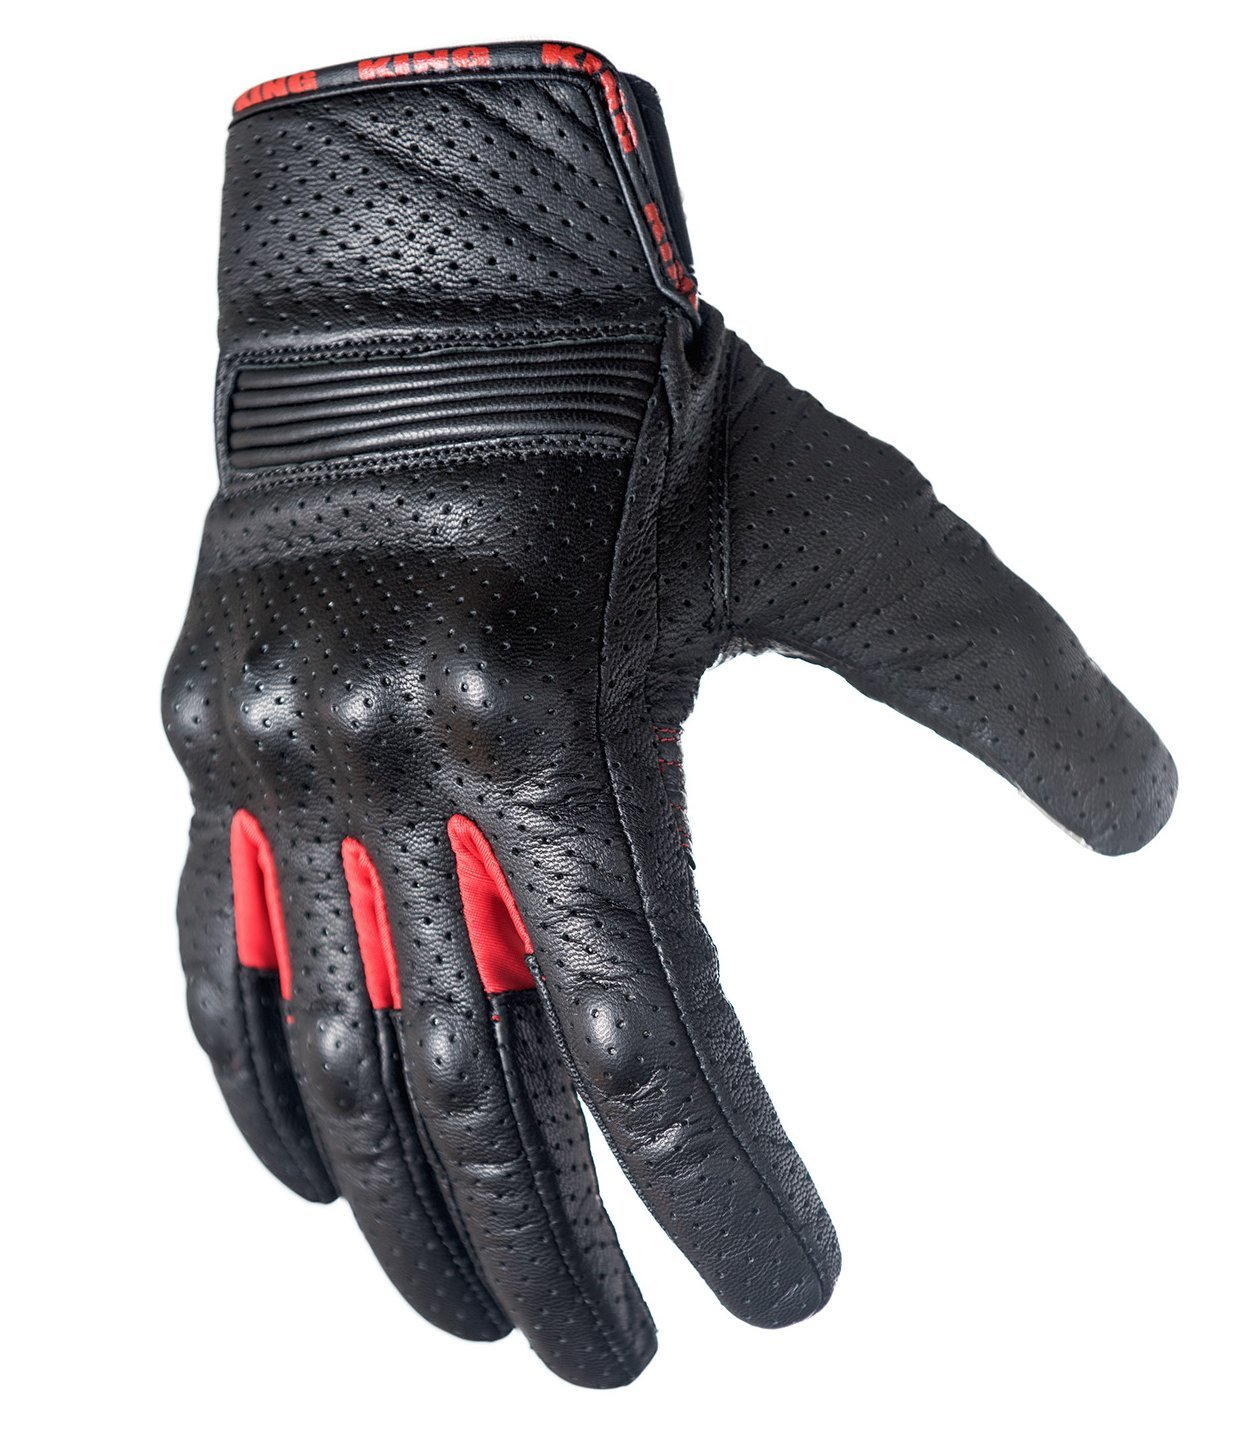 Motorcycle Biker Gloves Black Premium Leather | Padded All Weather Feature for Men and Women | Breathable Moisture Wick Air Flow Technology Between Fingers | SWIFT (Red-Lg)